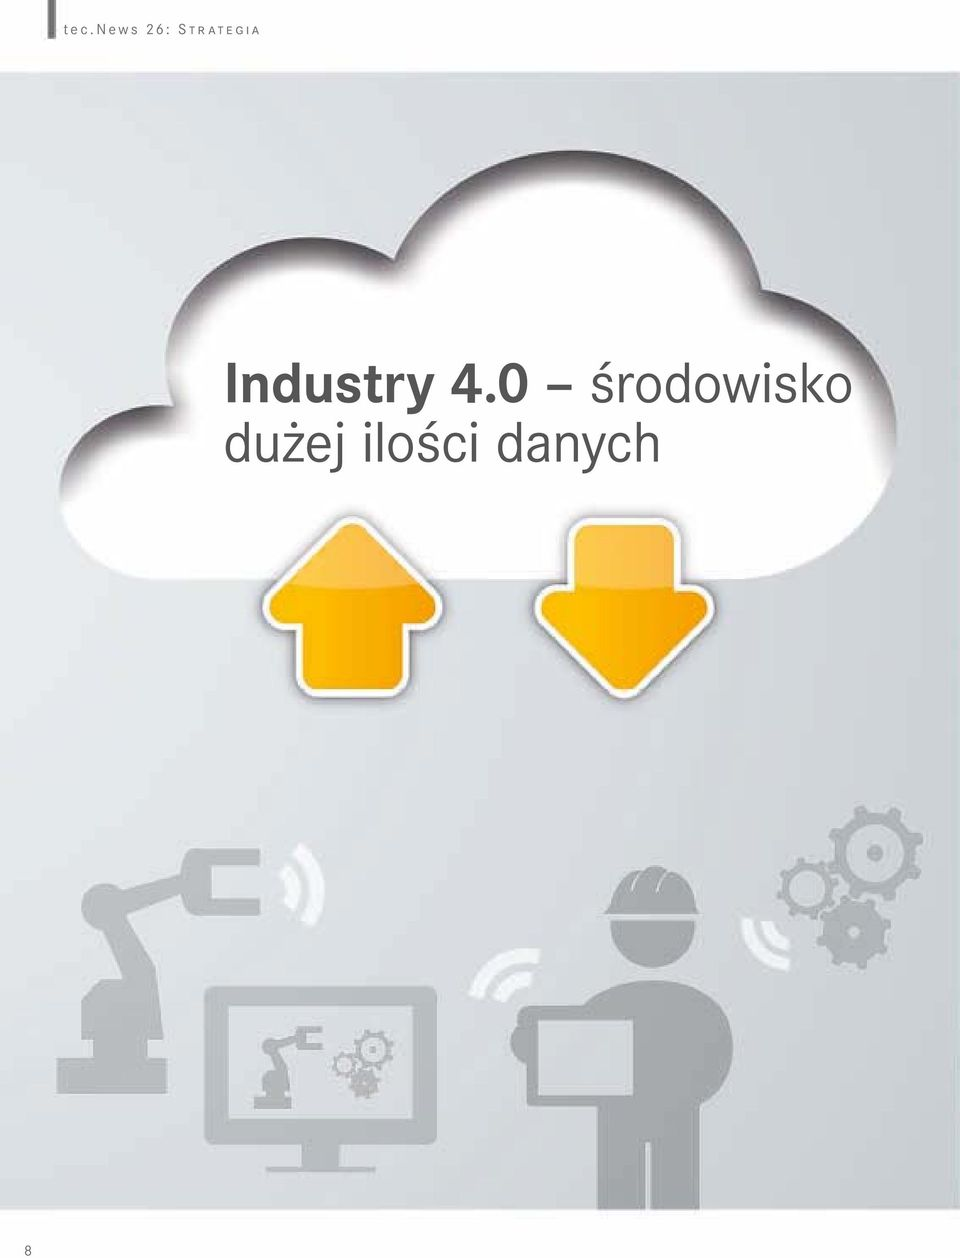 Industry 4.